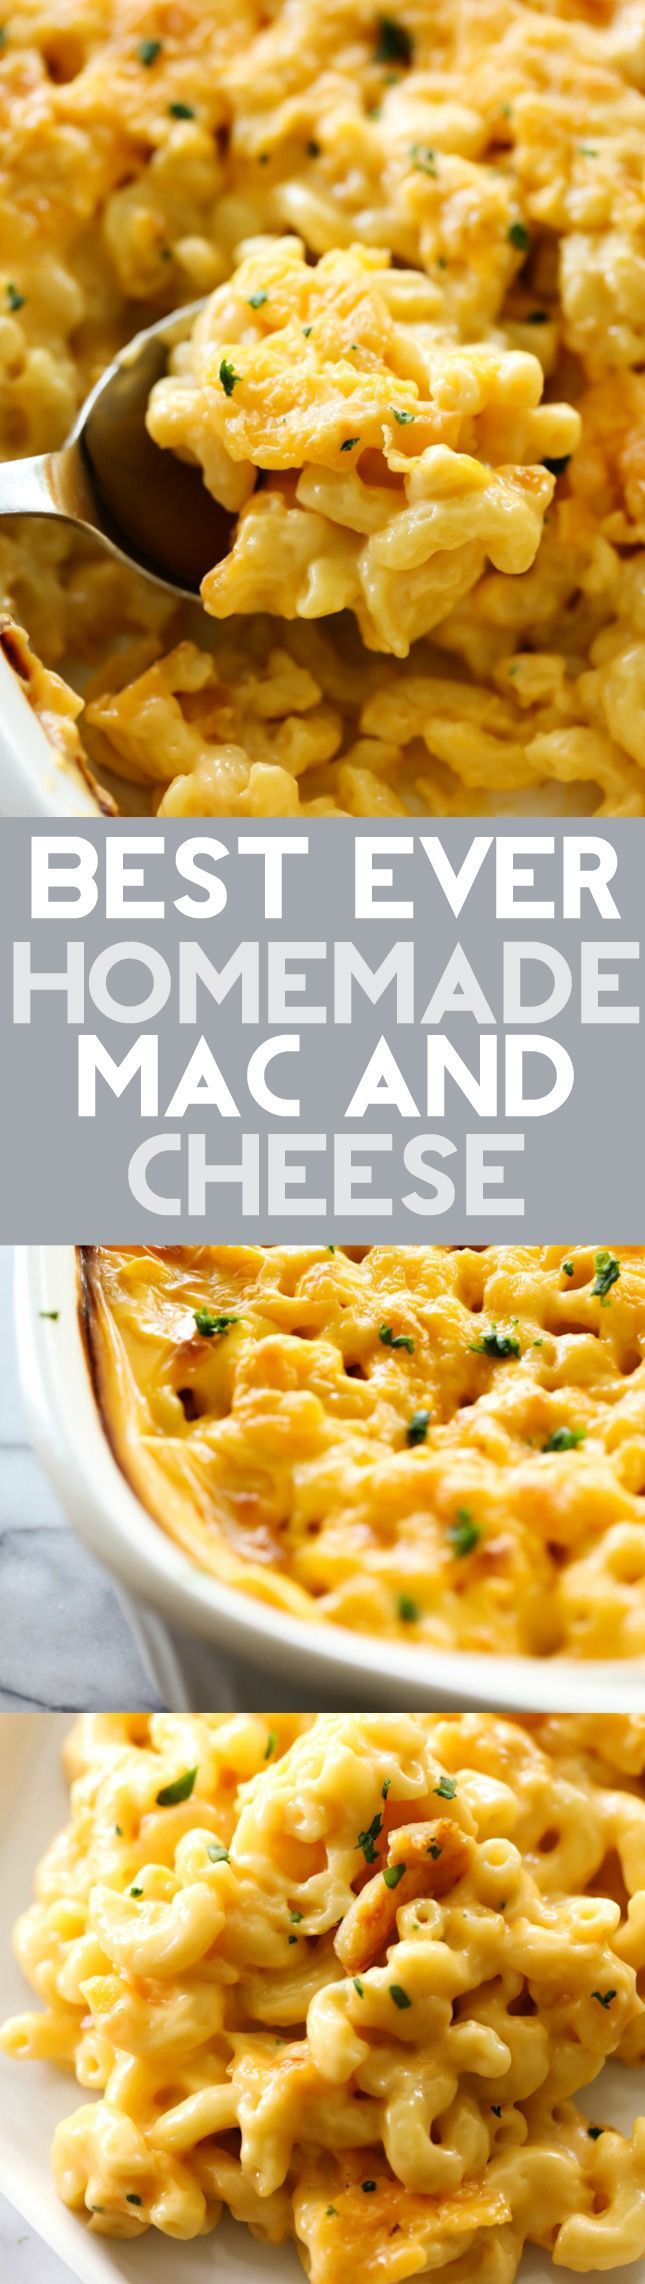 ever homemade mac and cheese homemade velveeta homemade mac cheese mac ...